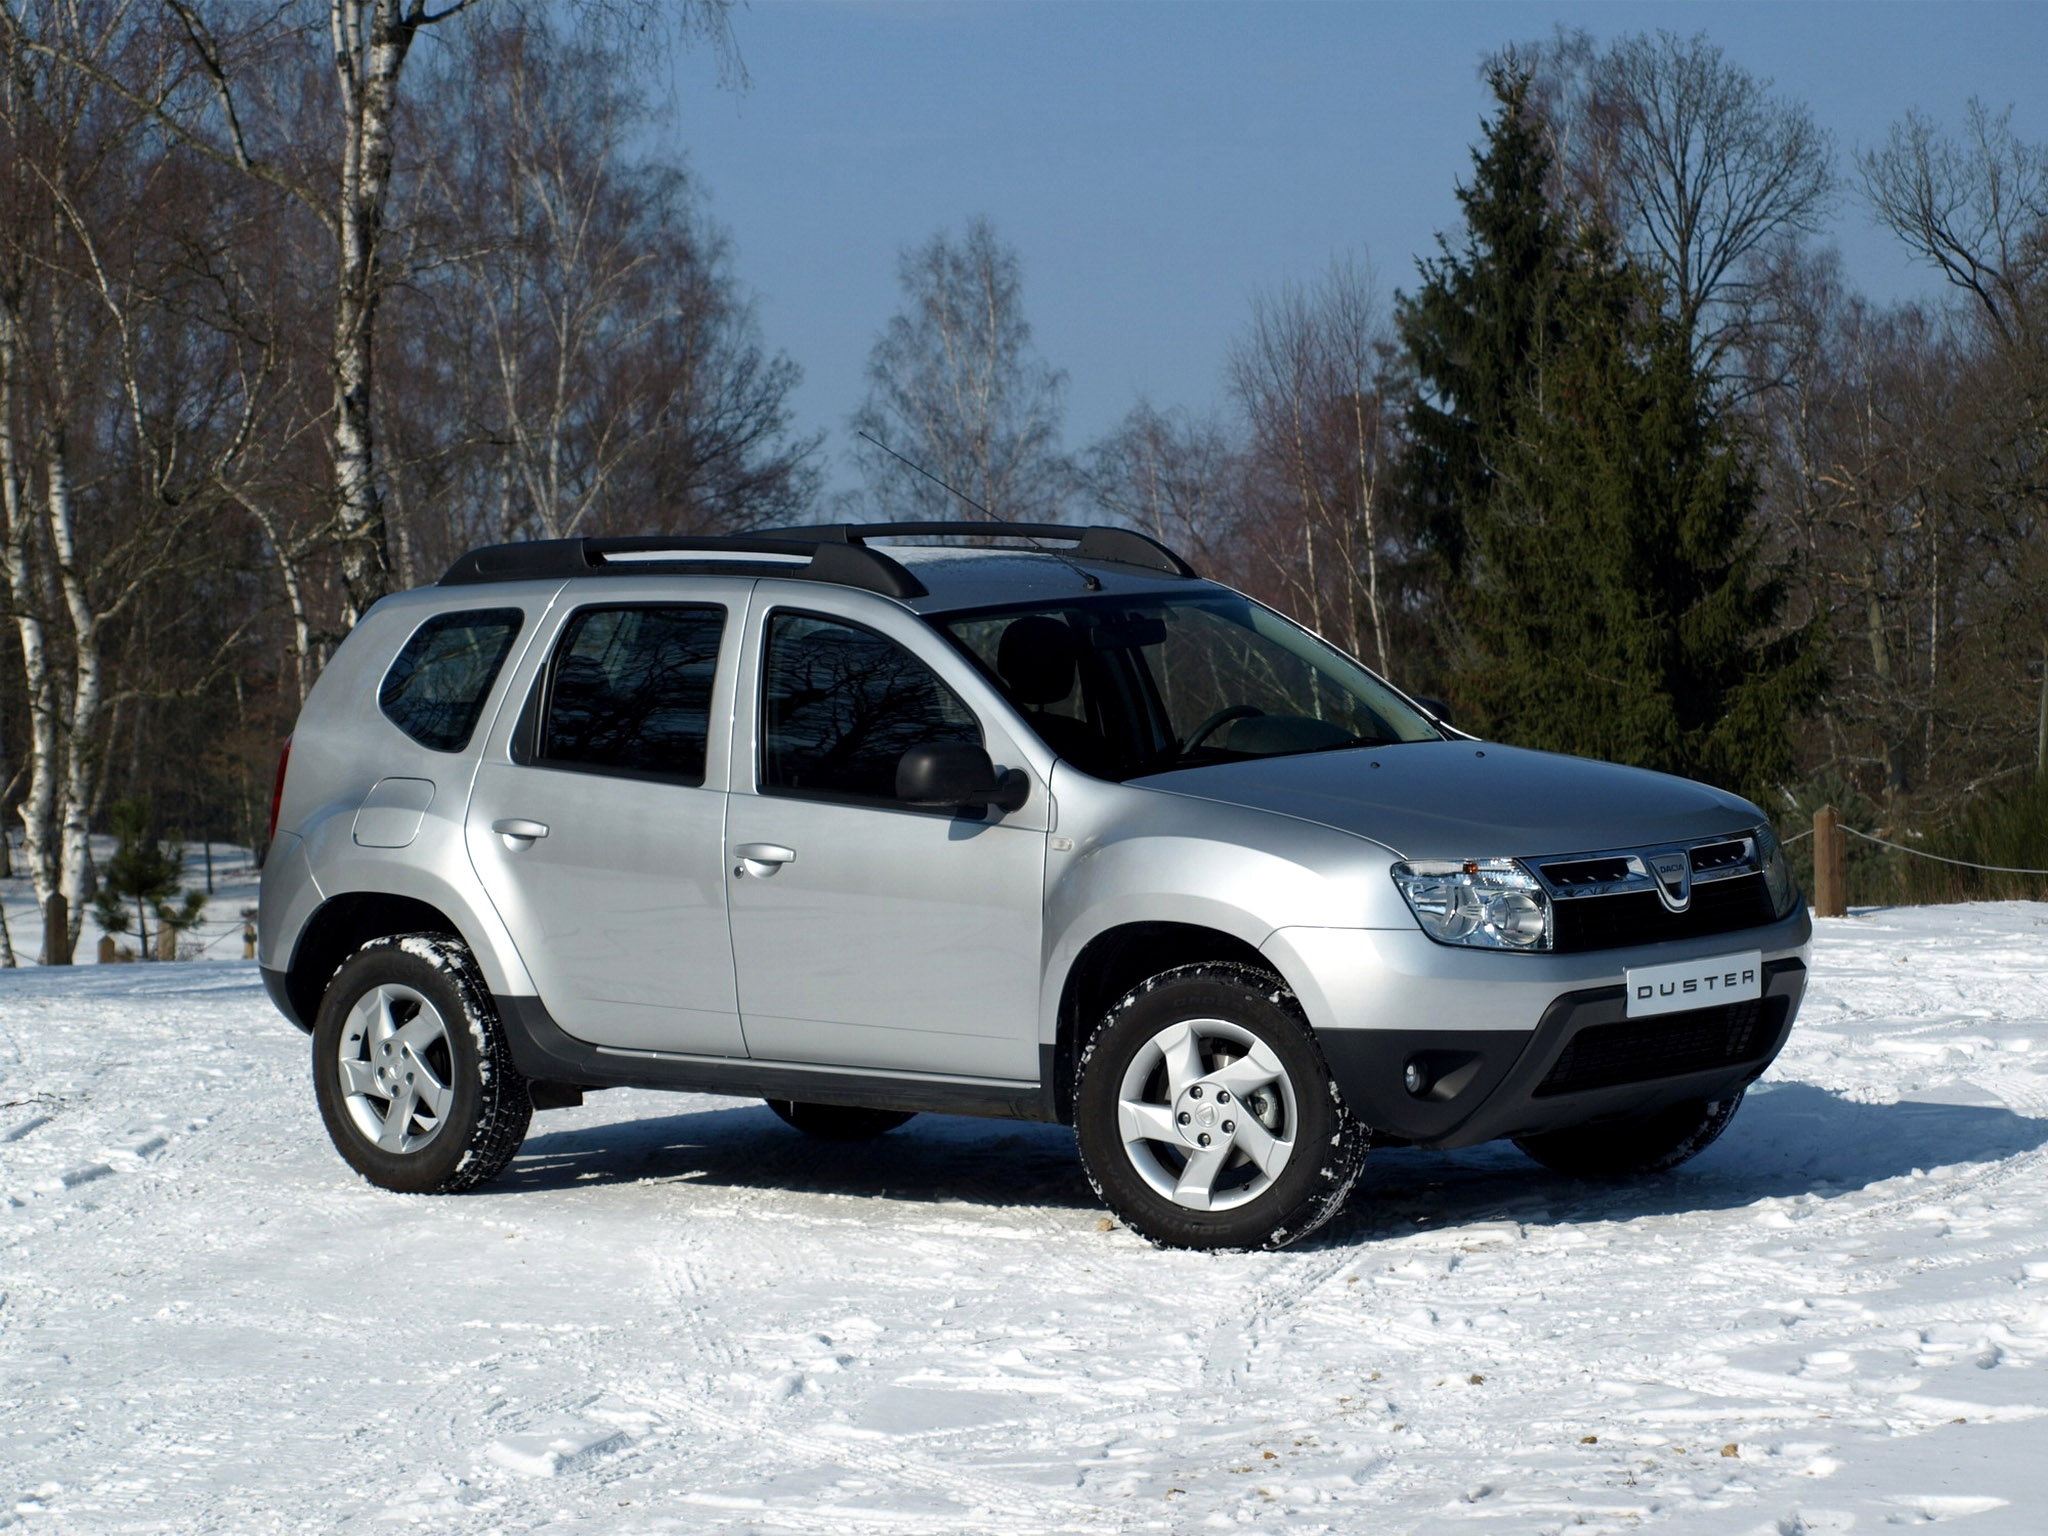 dacia duster 2010 dacia duster 2010 photo 30 car in pictures car photo gallery. Black Bedroom Furniture Sets. Home Design Ideas